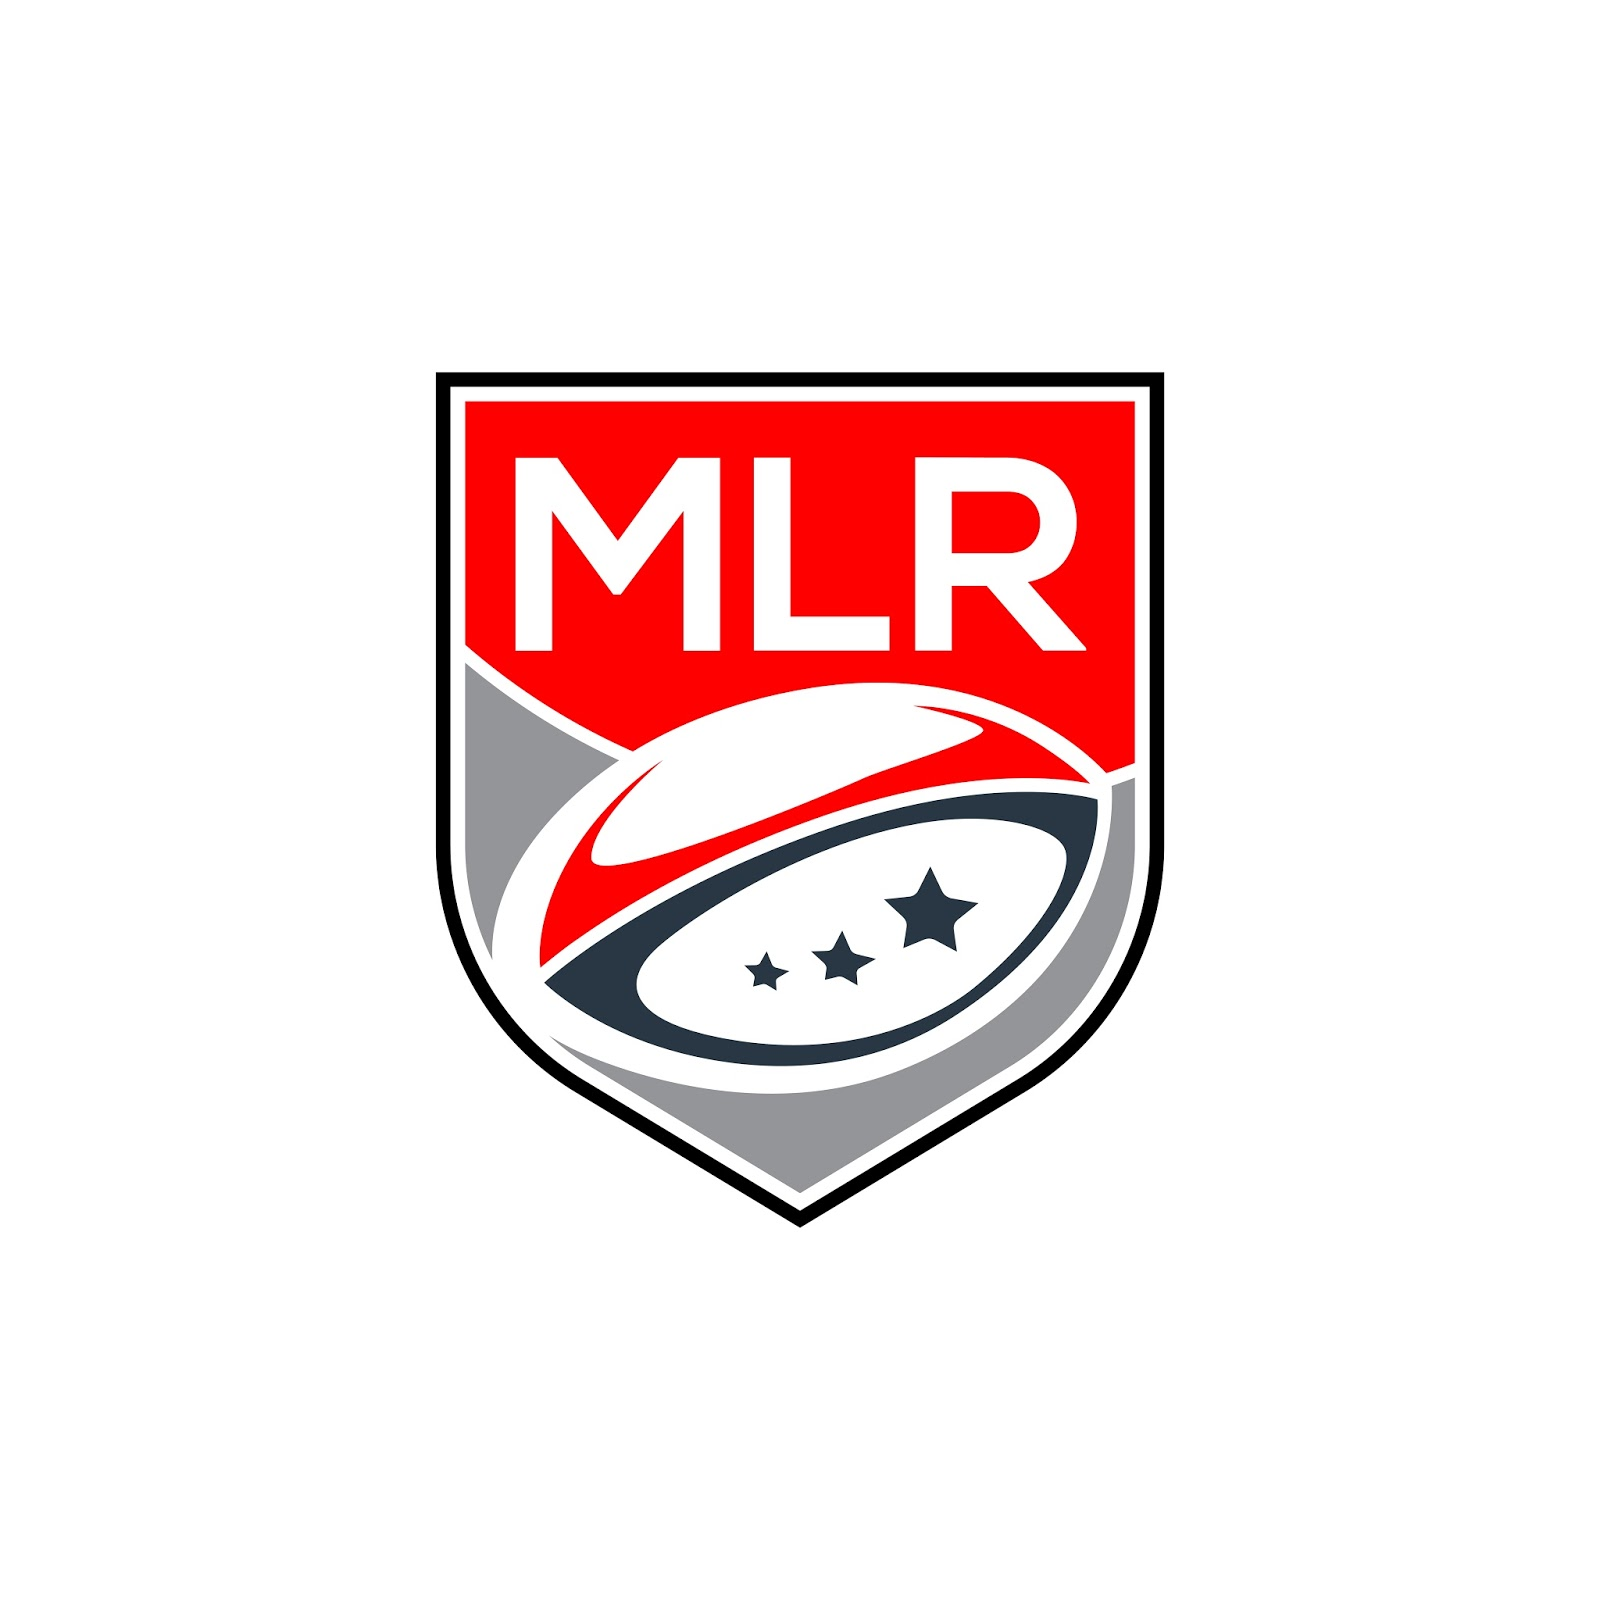 This is american rugby new orleans confirms major league rugby plans new orleans confirms major league rugby plans buycottarizona Choice Image